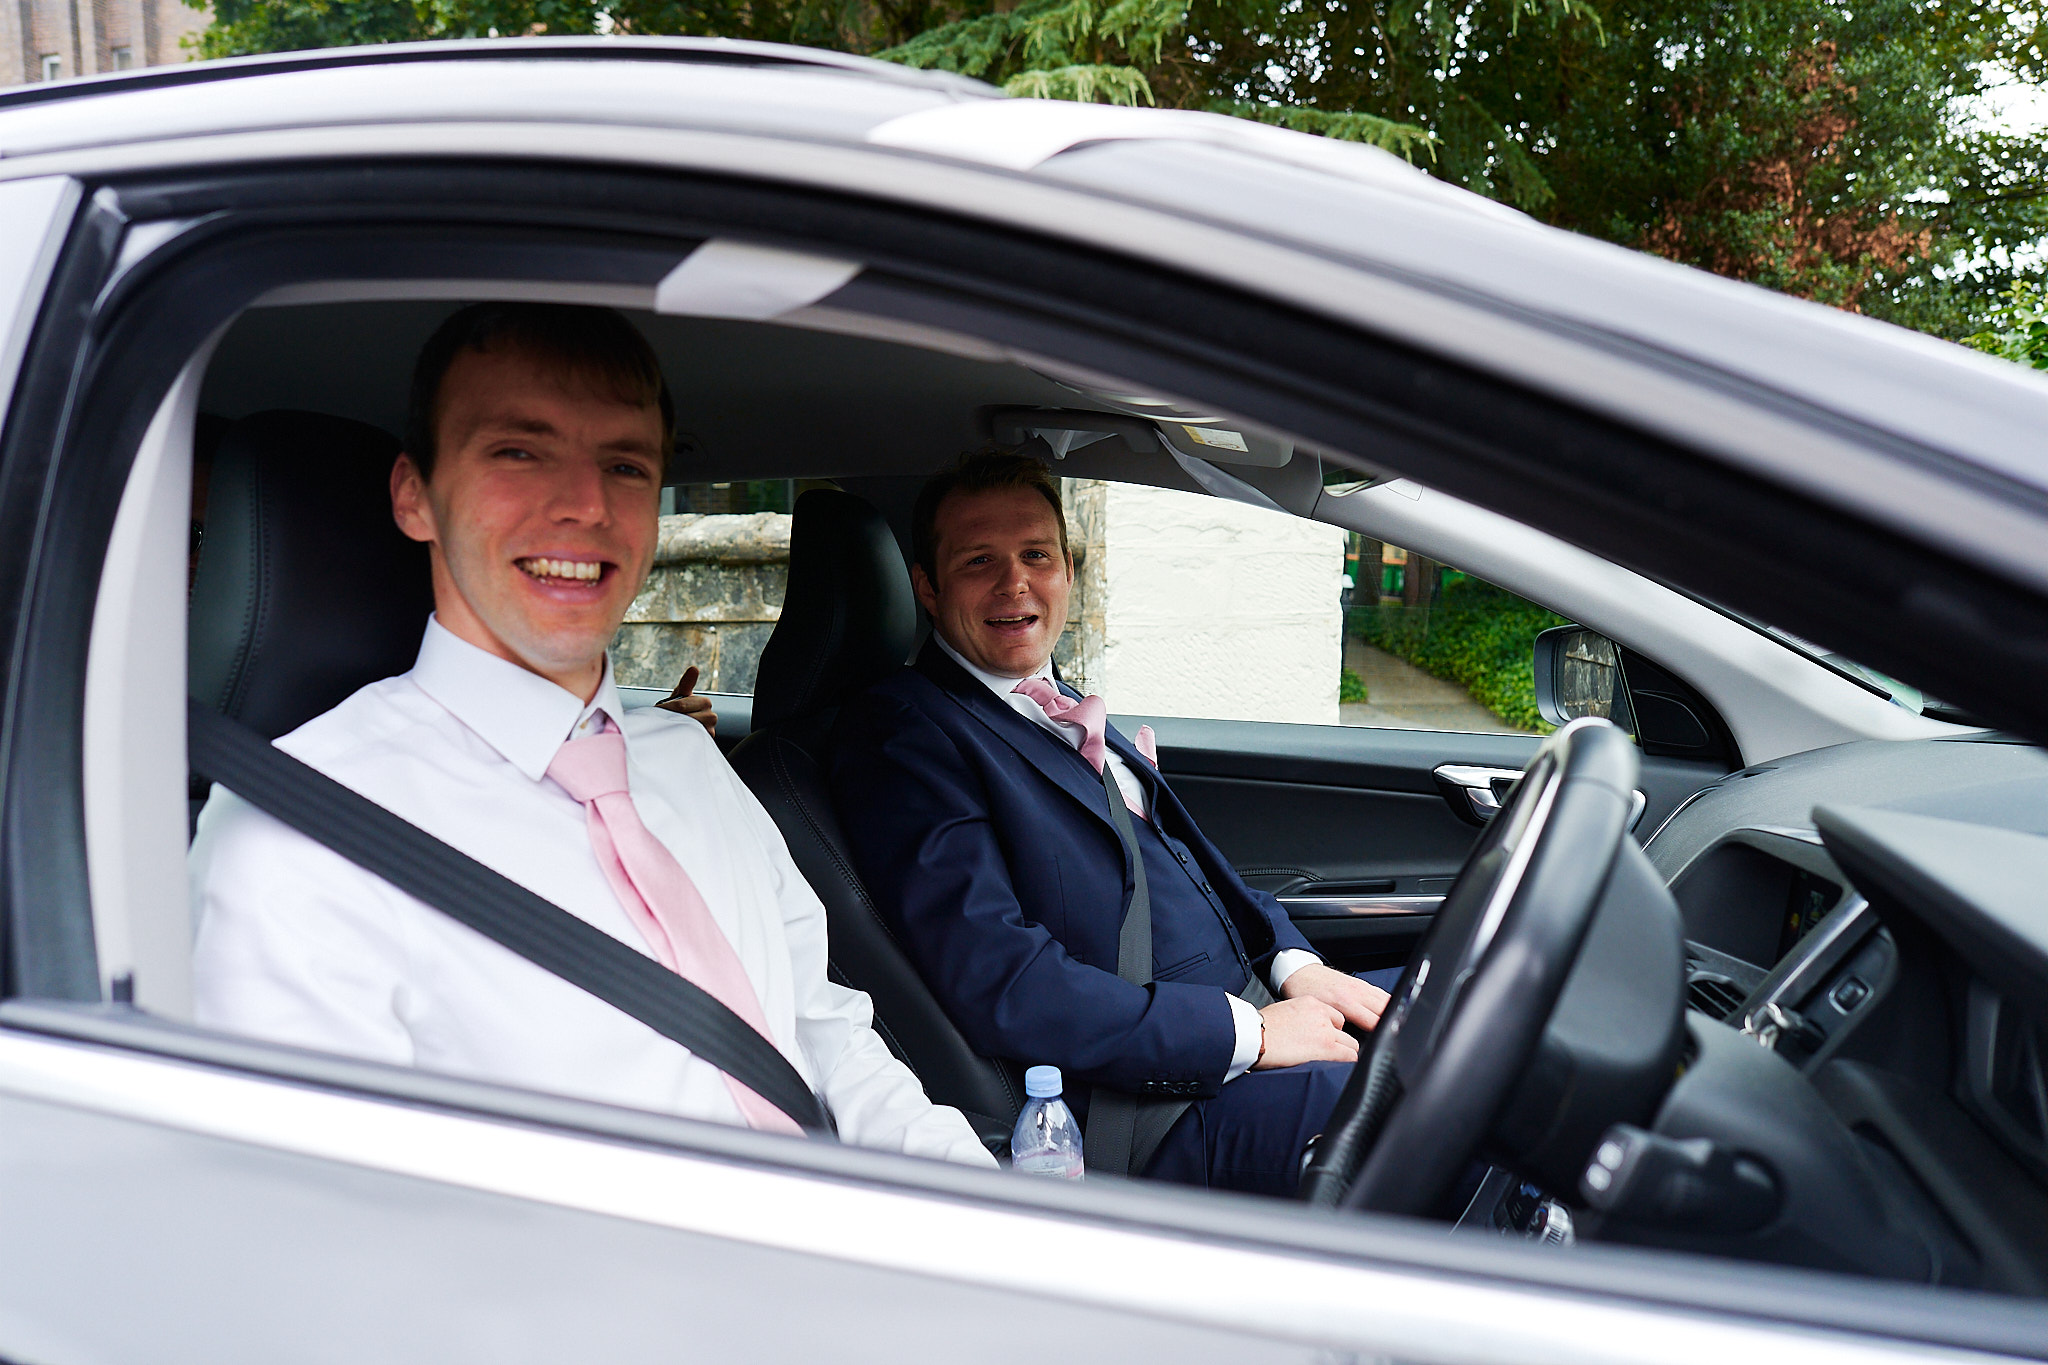 arrival of groom and one best man in car